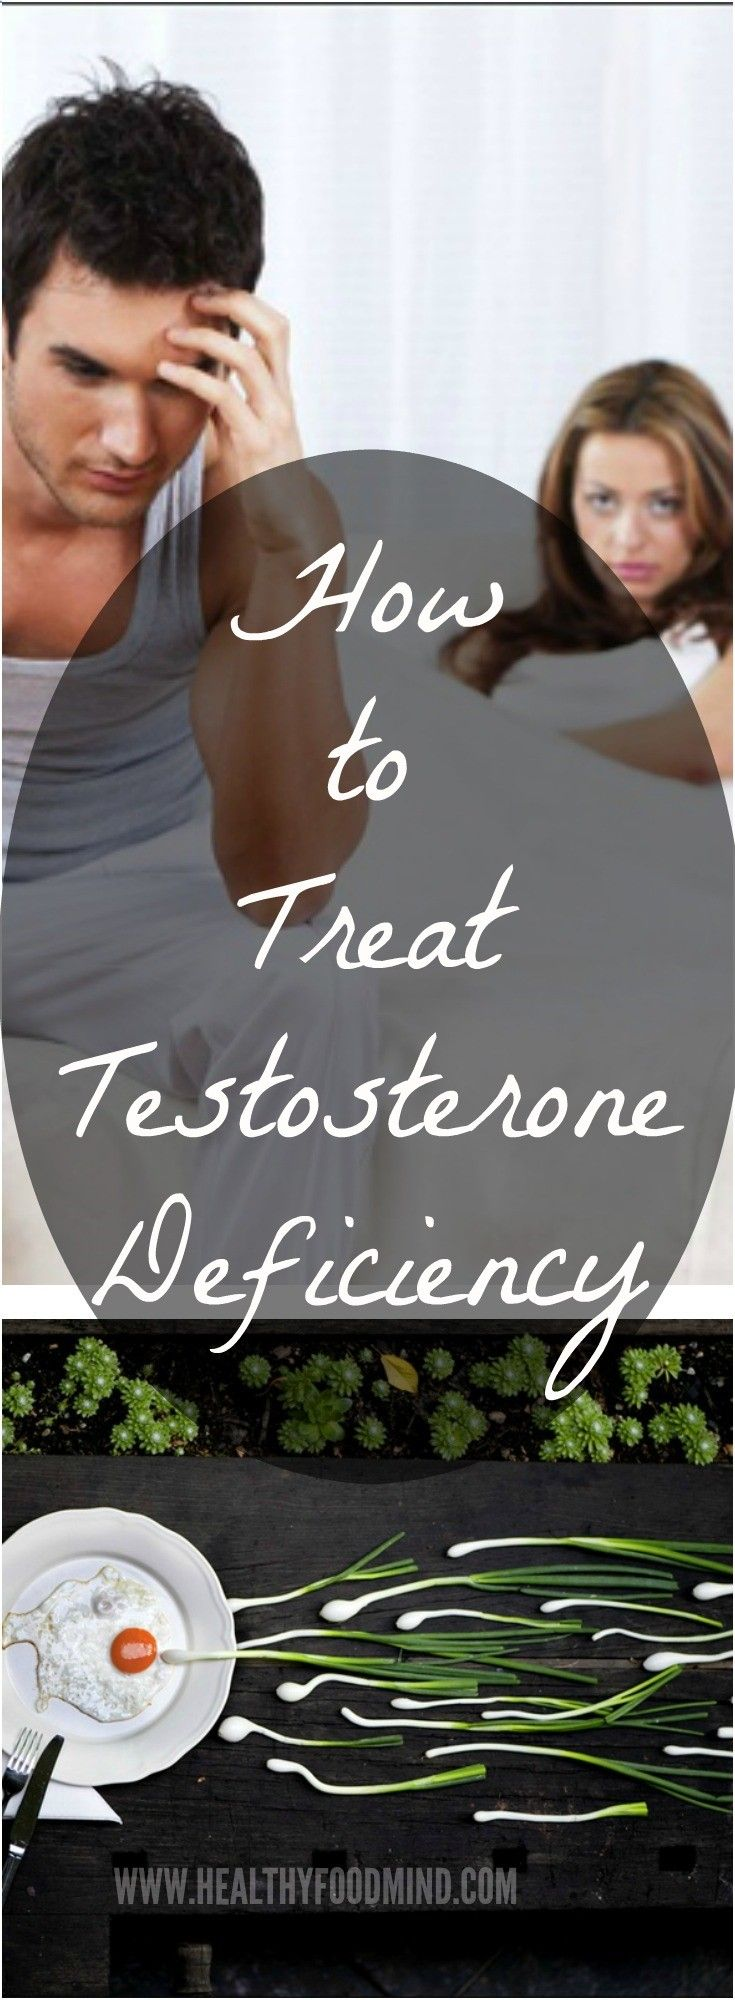 Its natural for testosterone levels to decline as men age, but sometimes low testosterone can cause symptoms ranging from low sex drive to depression.